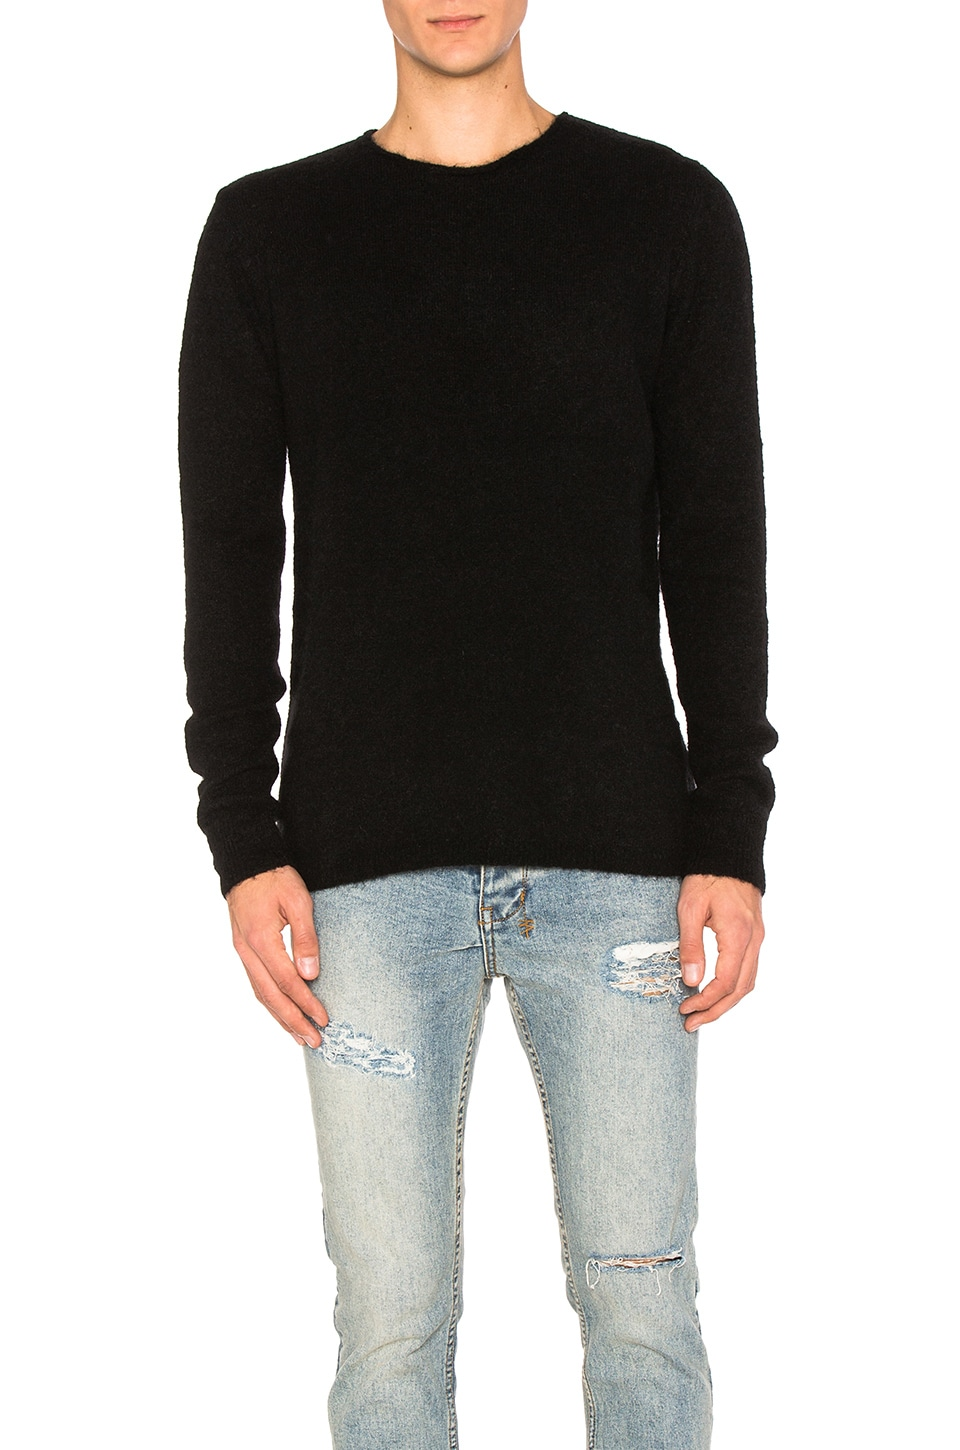 Interpol Crew Knit Sweater by Ksubi